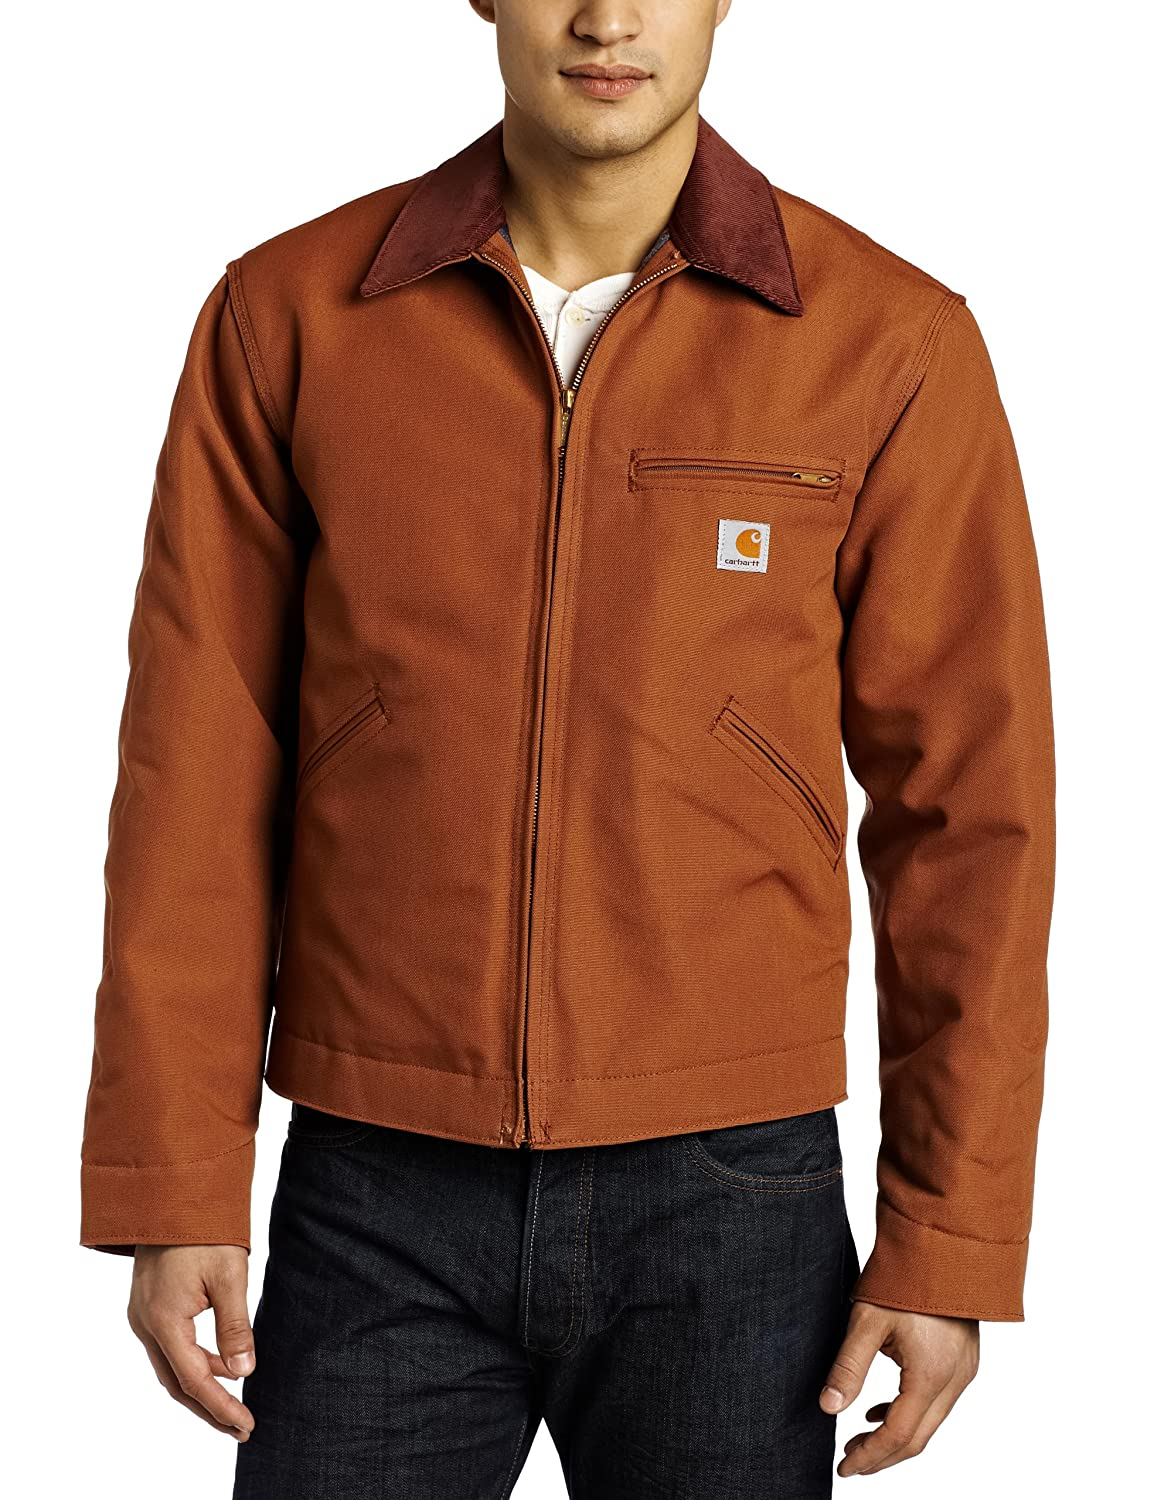 Carhartt Men's Weathered Duck Detroit Jacket Carhartt Sportswear - Mens J001